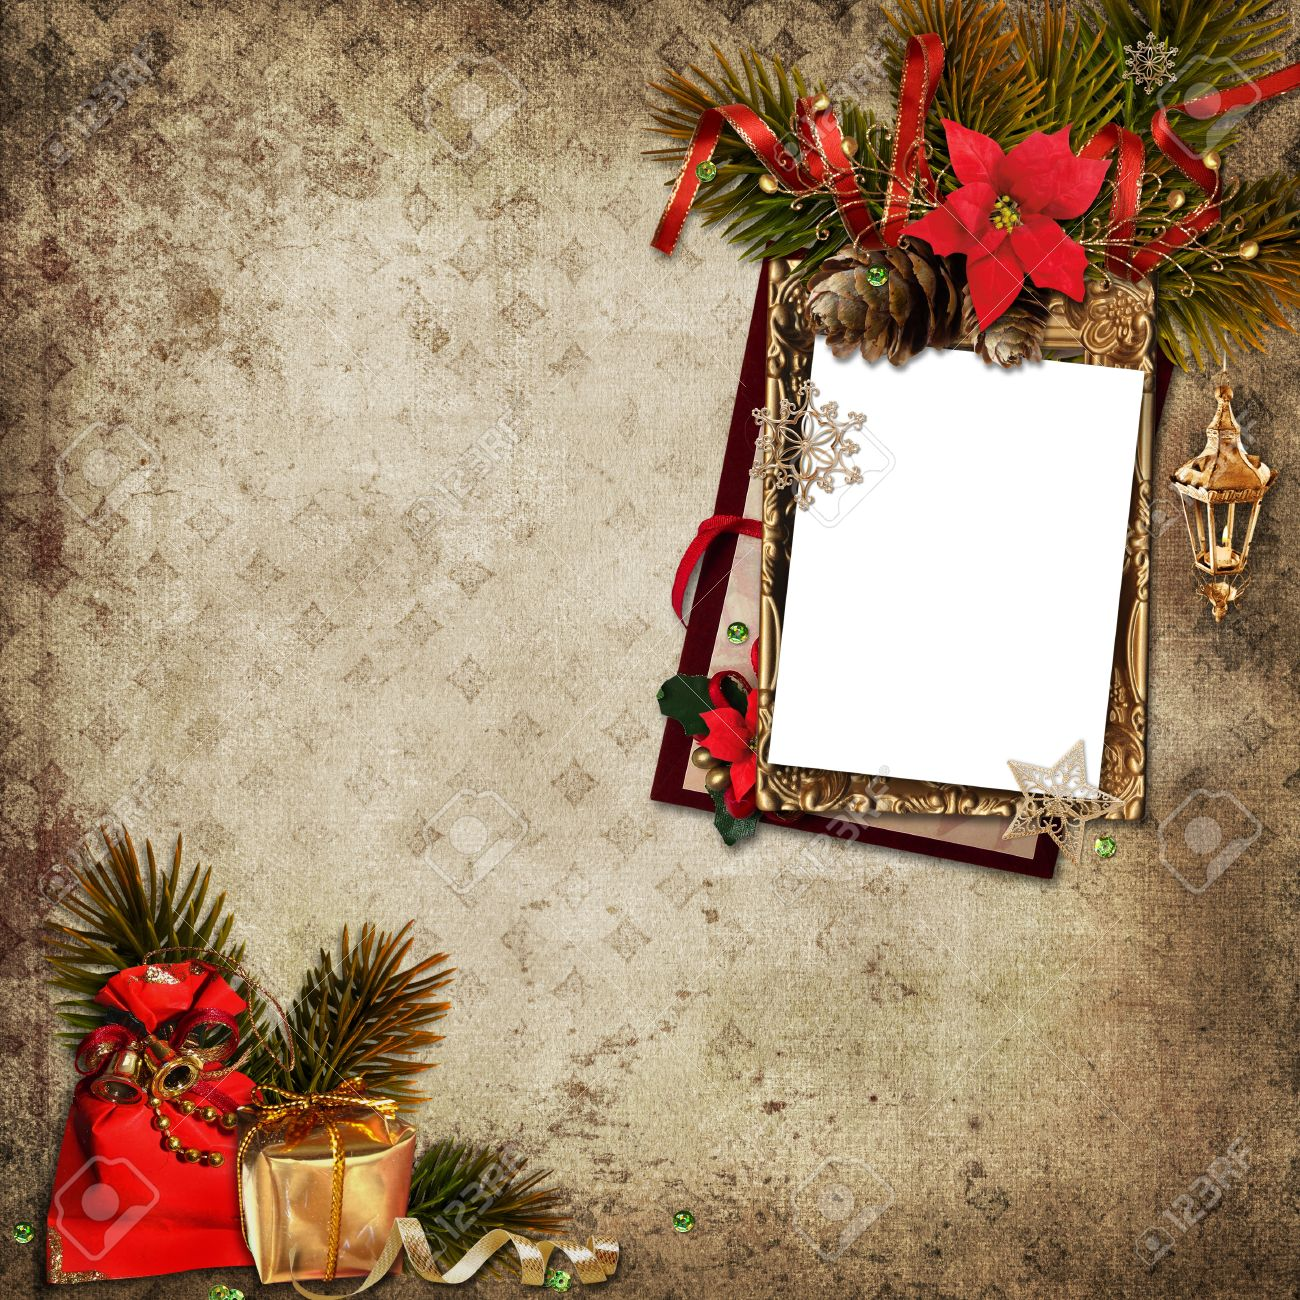 Vintage Christmas Background With Frame Stock Photo, Picture And ...